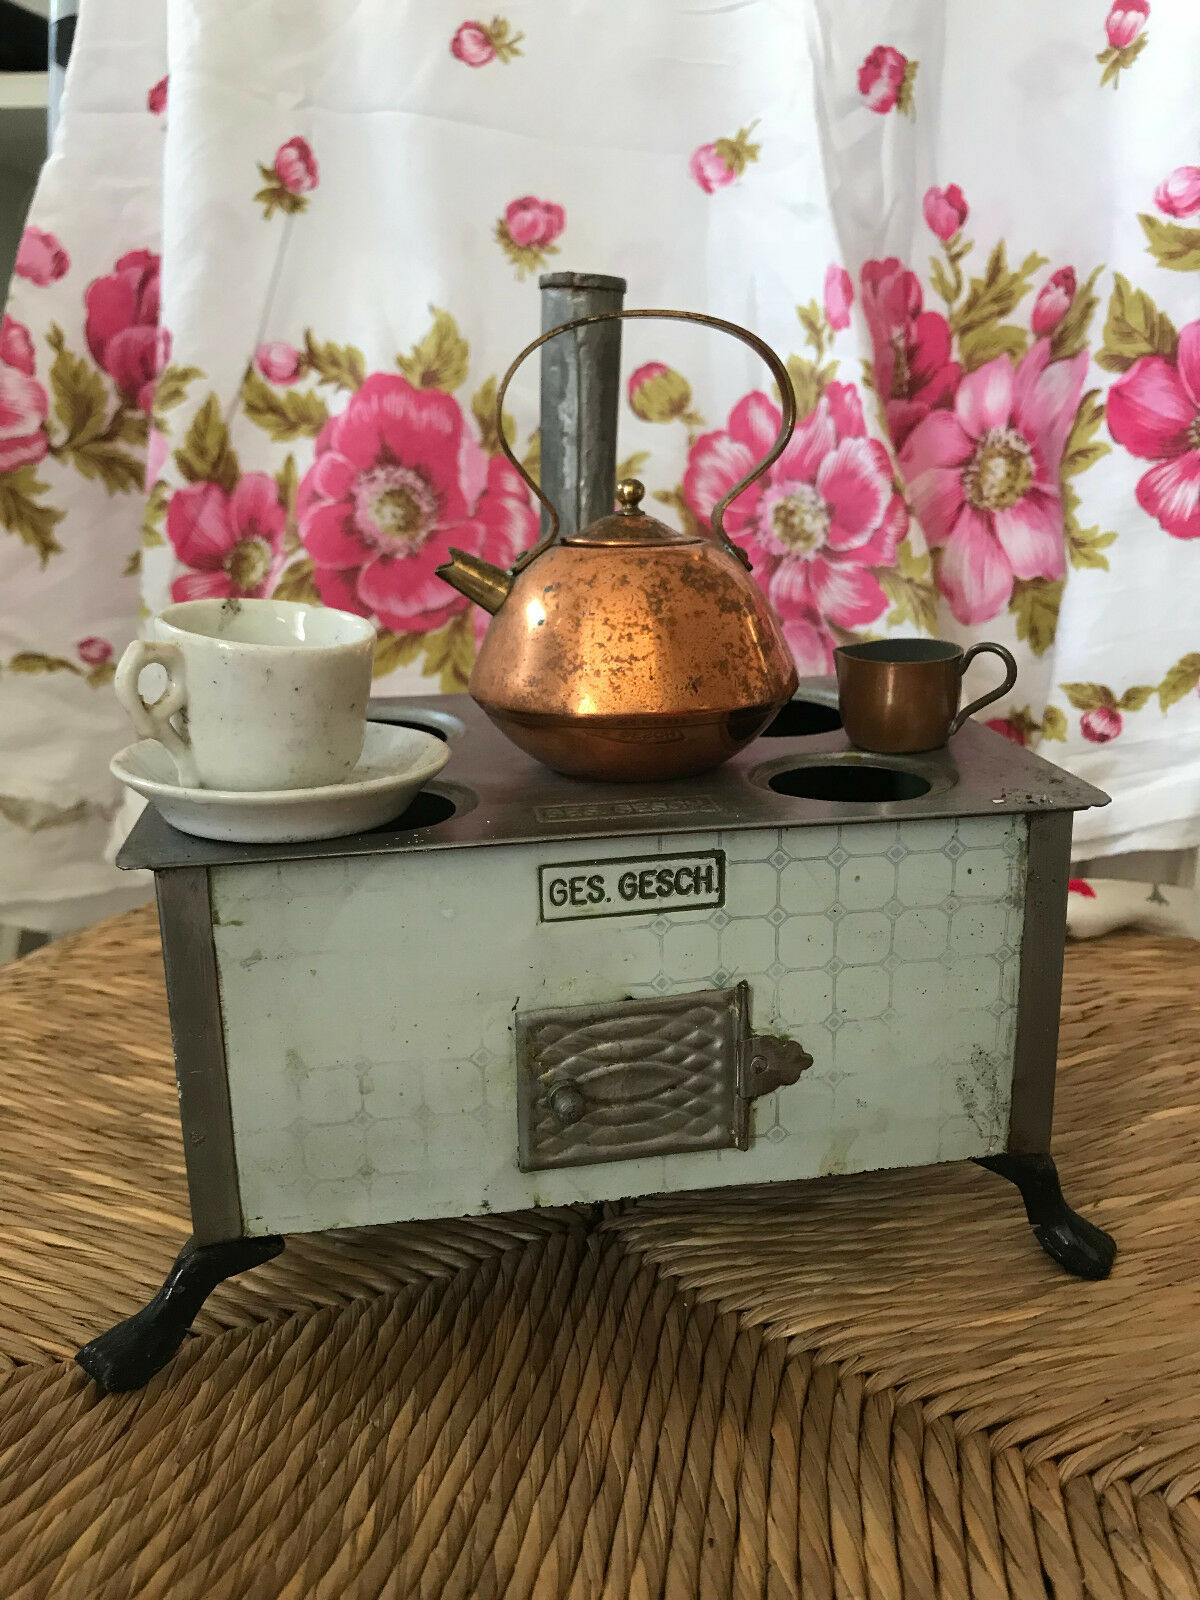 Antique Toy Doll Stove with Accessories  Ges Gesch made in Germany